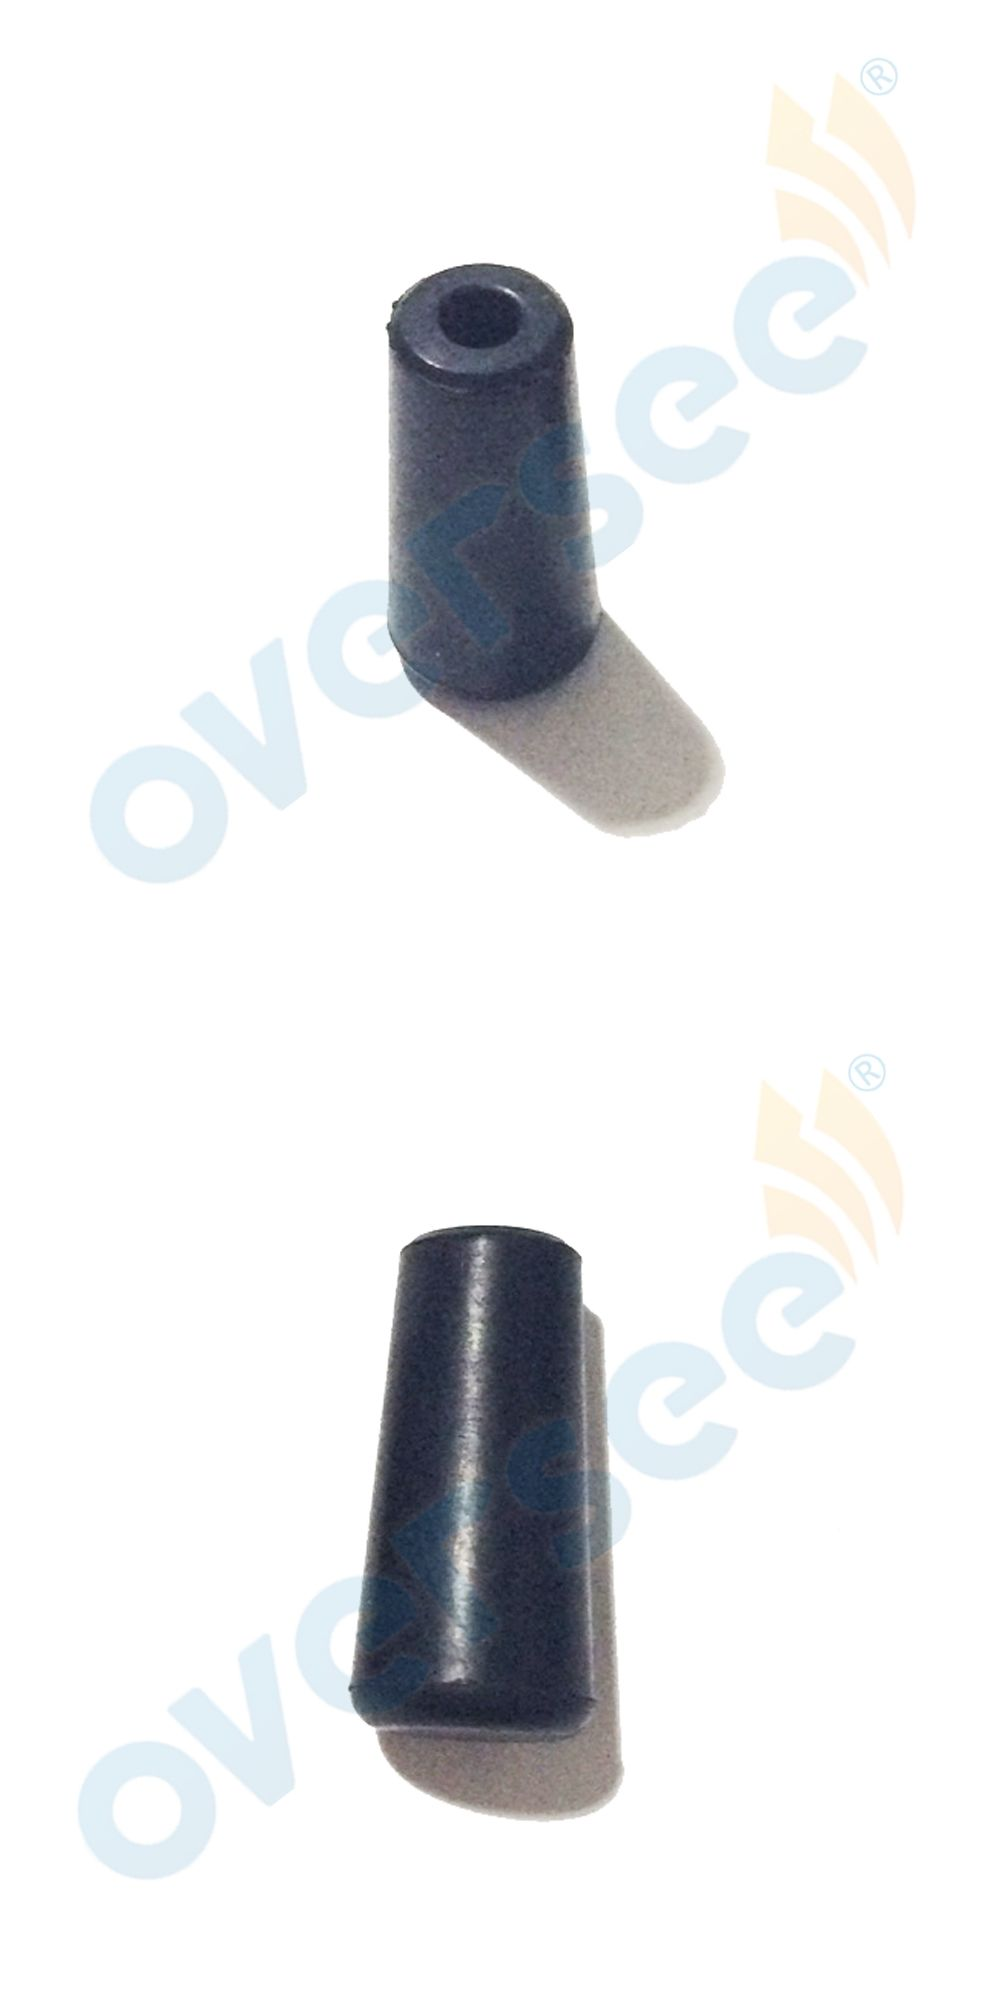 OVERSEE Outboard Engine Nylon Parts For Yamaha 4HP 5HP 6E0 43632 00 Knob Tilt